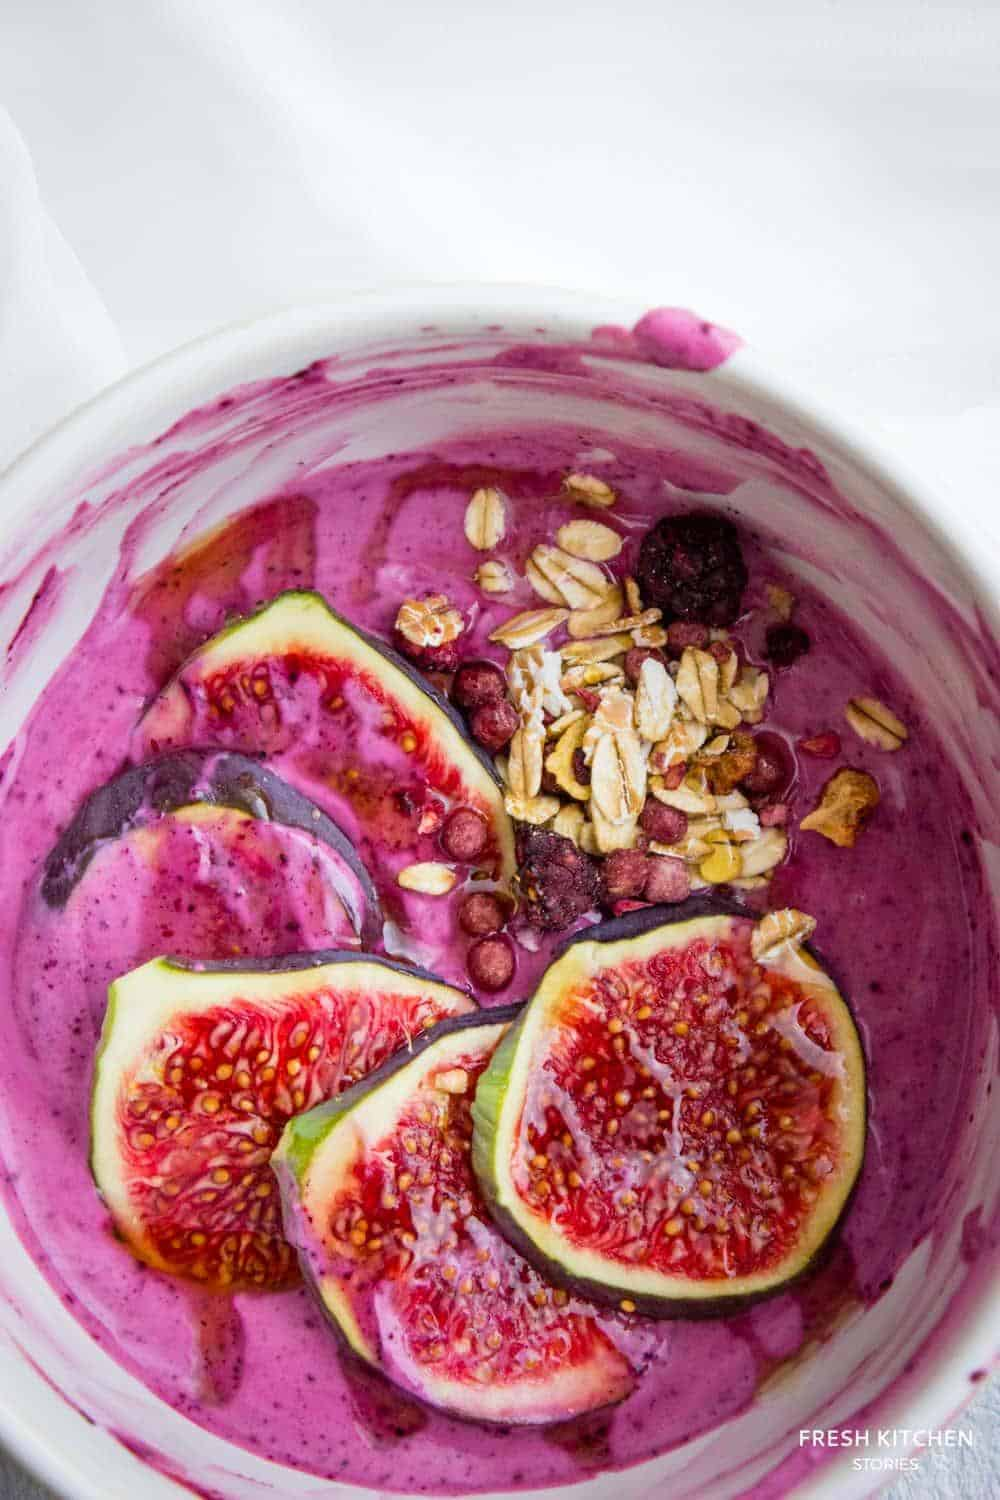 Pimped Out Greek Yogurt topped with figs